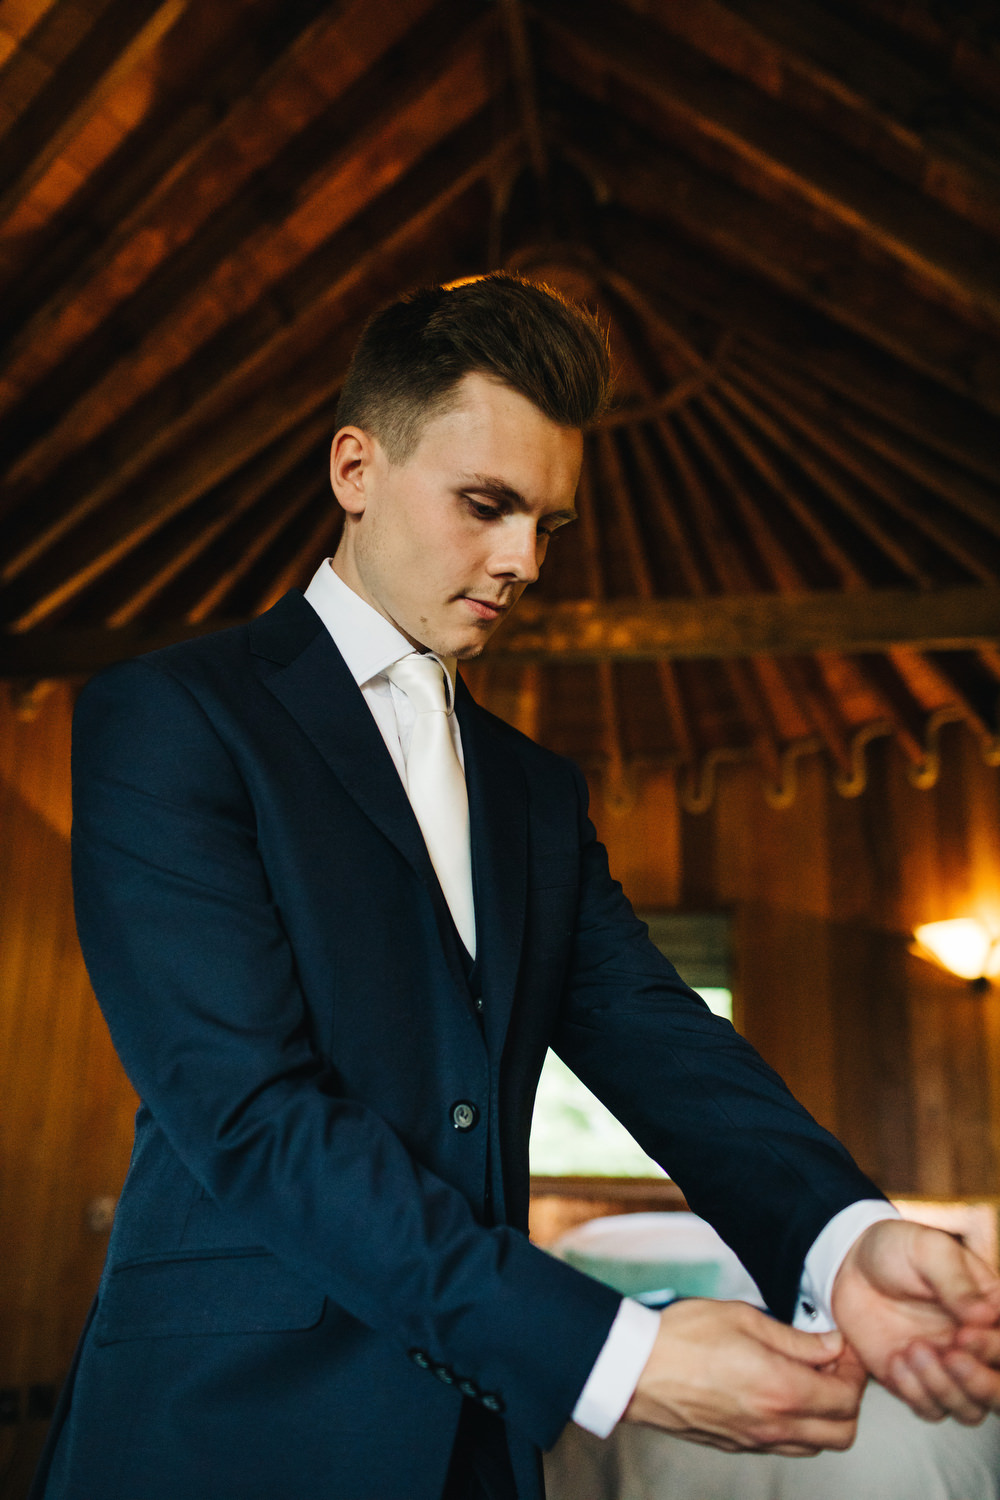 Groom Suit Navy White Tie Deer Park Country House Hotel Wedding Richard Skins Photography